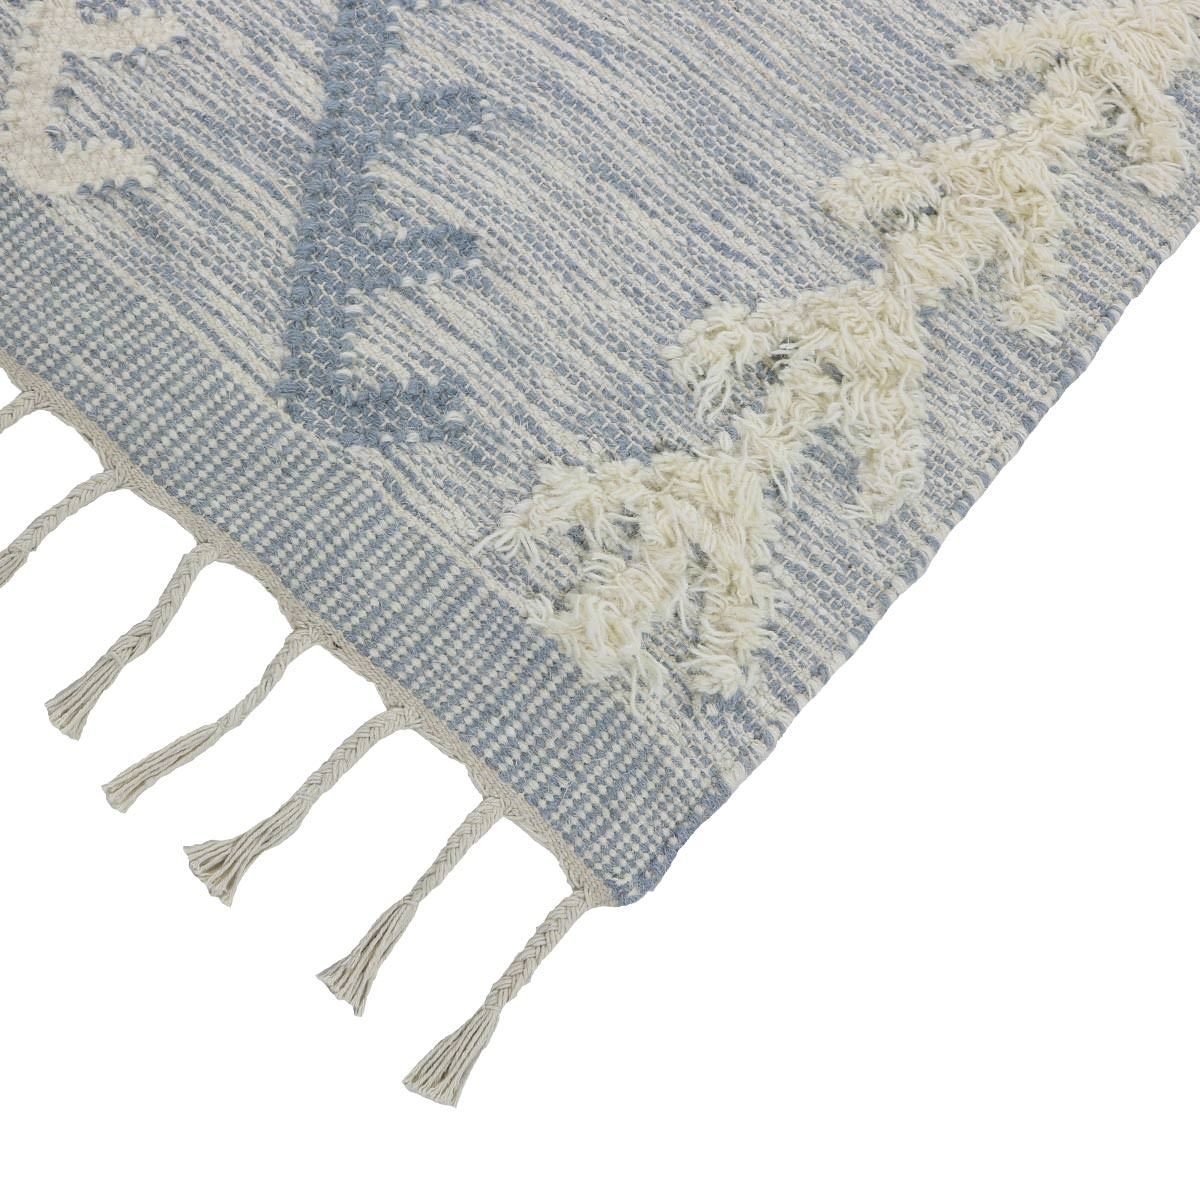 Tangier Rug 05 light blue Runner 4